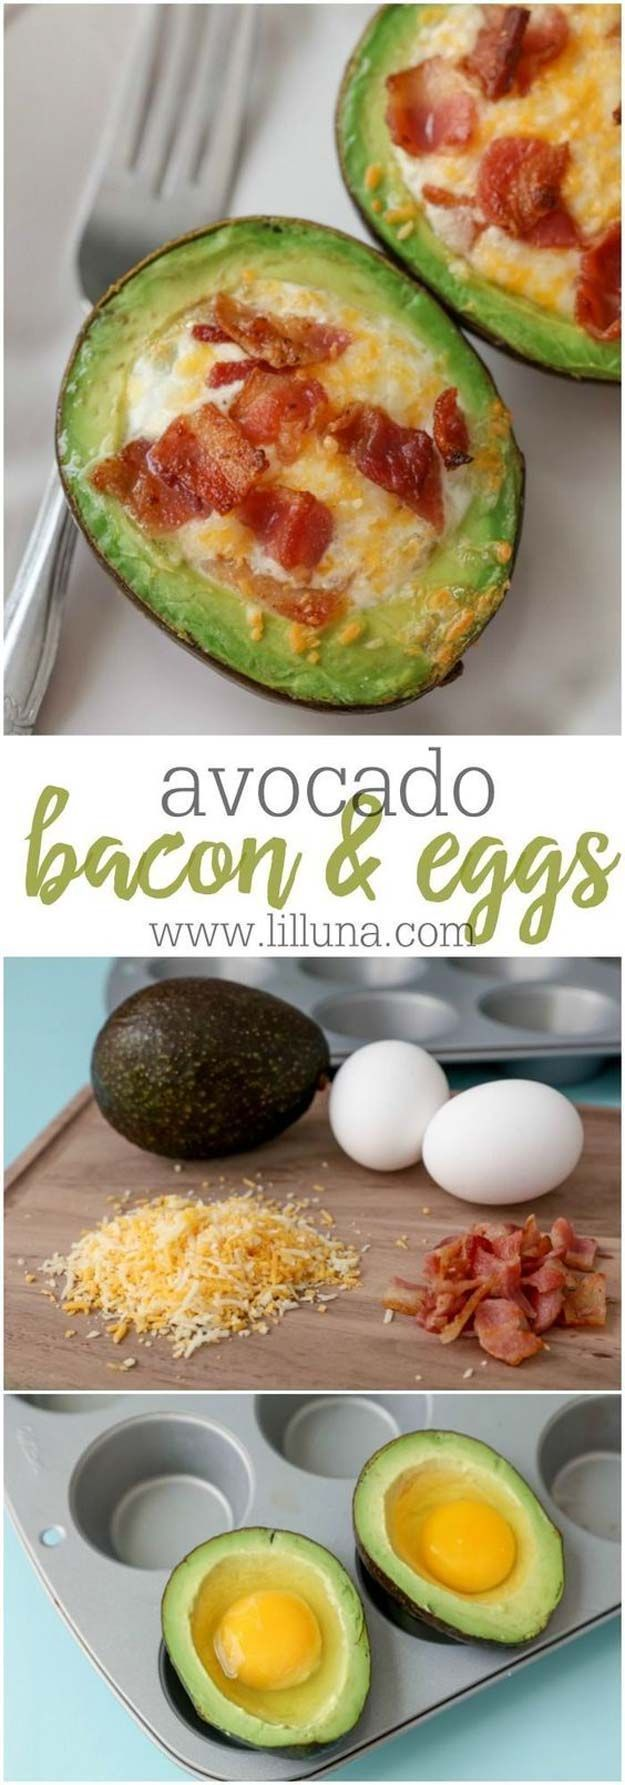 Healthy Avocado Recipes - Avocado Bacon and Eggs - Easy Clean Eating Recipes for Breakfast, Lunches, Dinner and even Desserts - Low Carb Vegetarian Snacks, Dip, Smothie Ideas and All Sorts of Diets - Get Your Fitness in Order with these awesome Paleo Deto